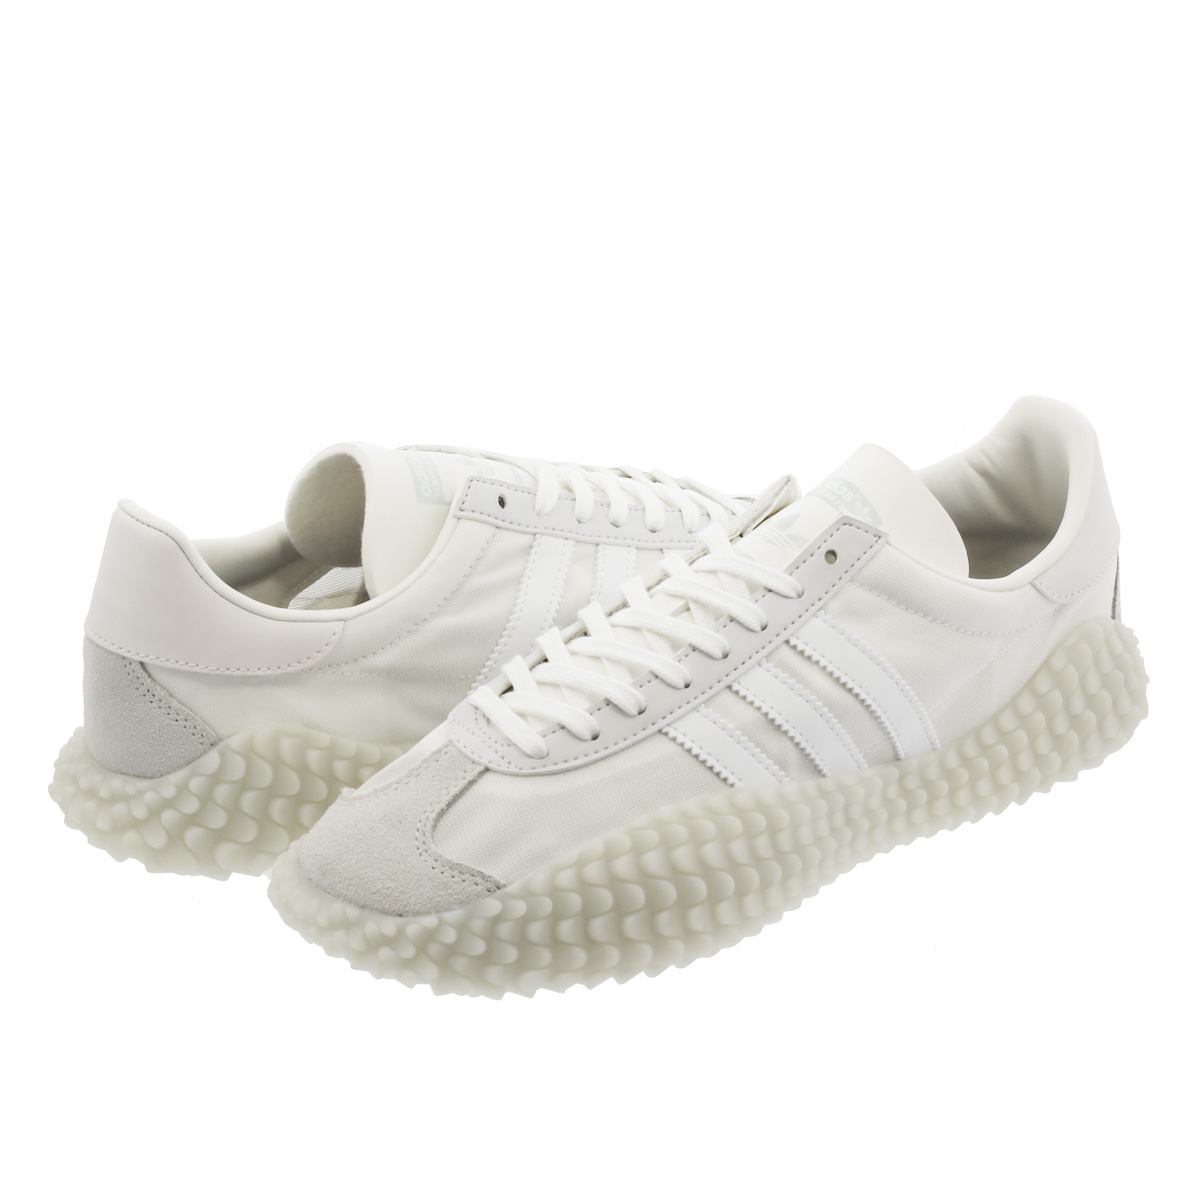 sneakers for cheap a63a9 2062d adidas COUNTRY X KAMANDA Adidas country X カマンダ CLOUD WHITERUNNING  WHITEGREY ONE g27825